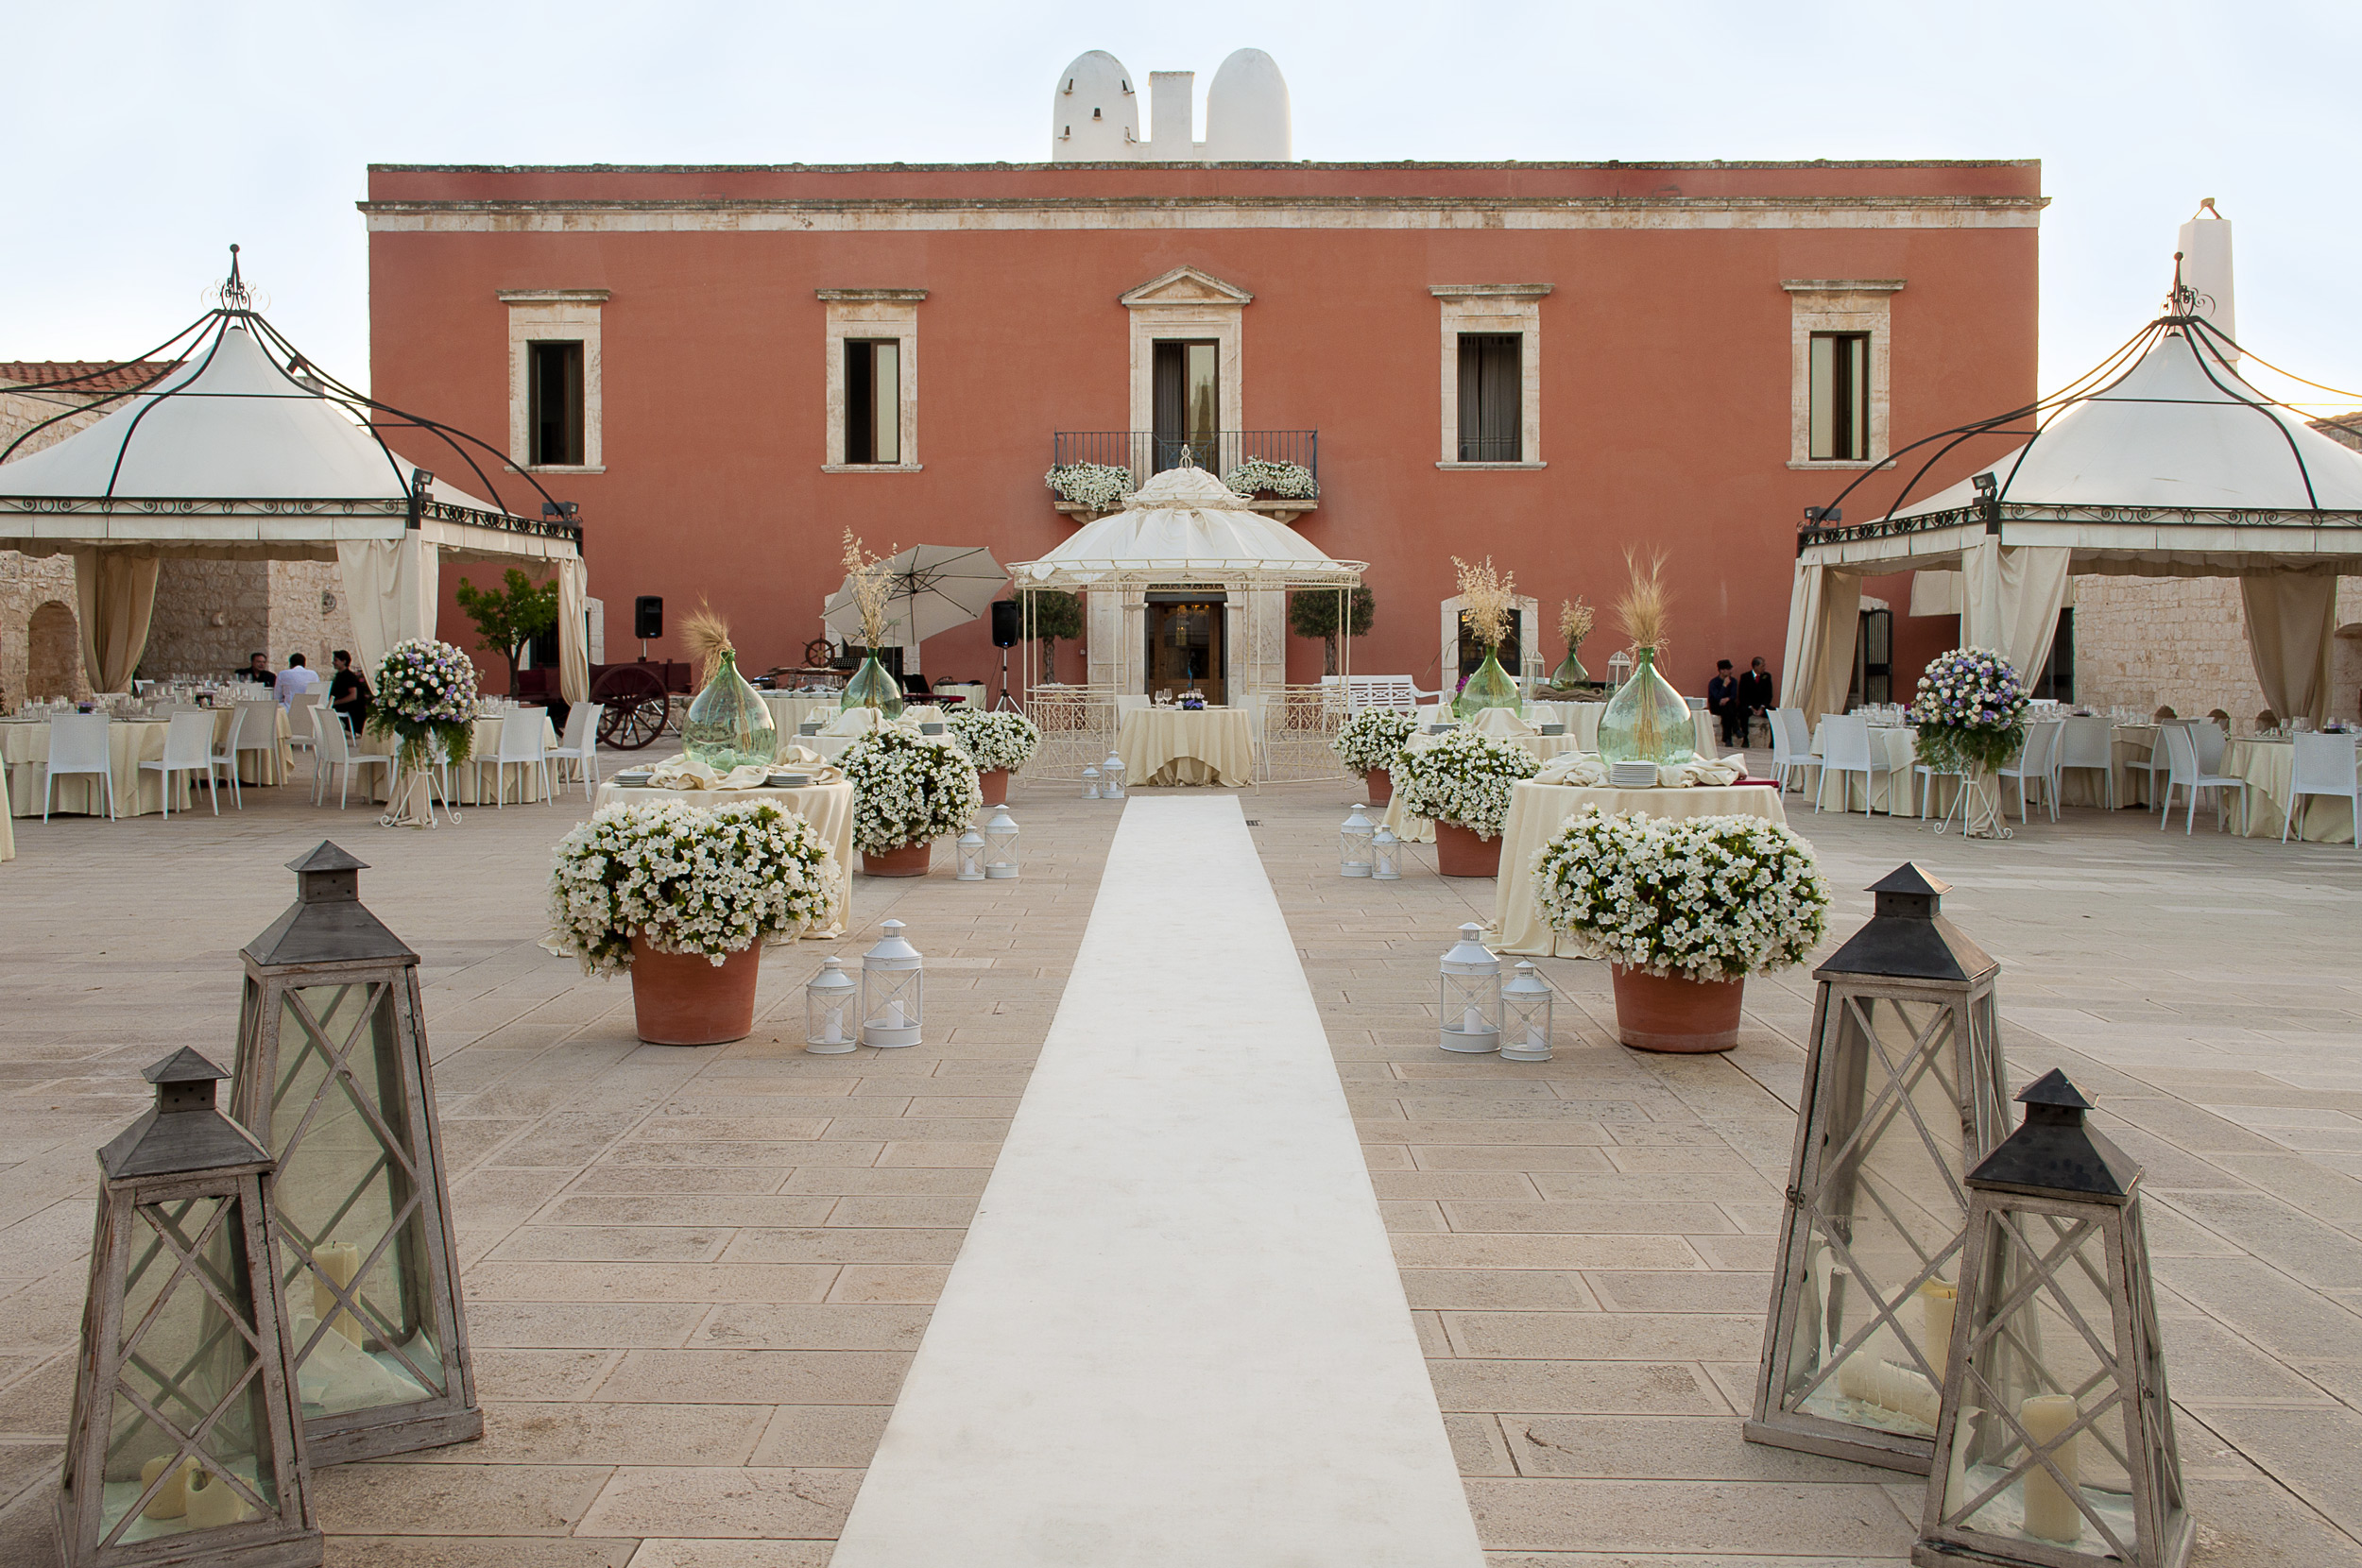 Matrimonio Country Chic Salento : Le migliori location per matrimonio country chic a bari